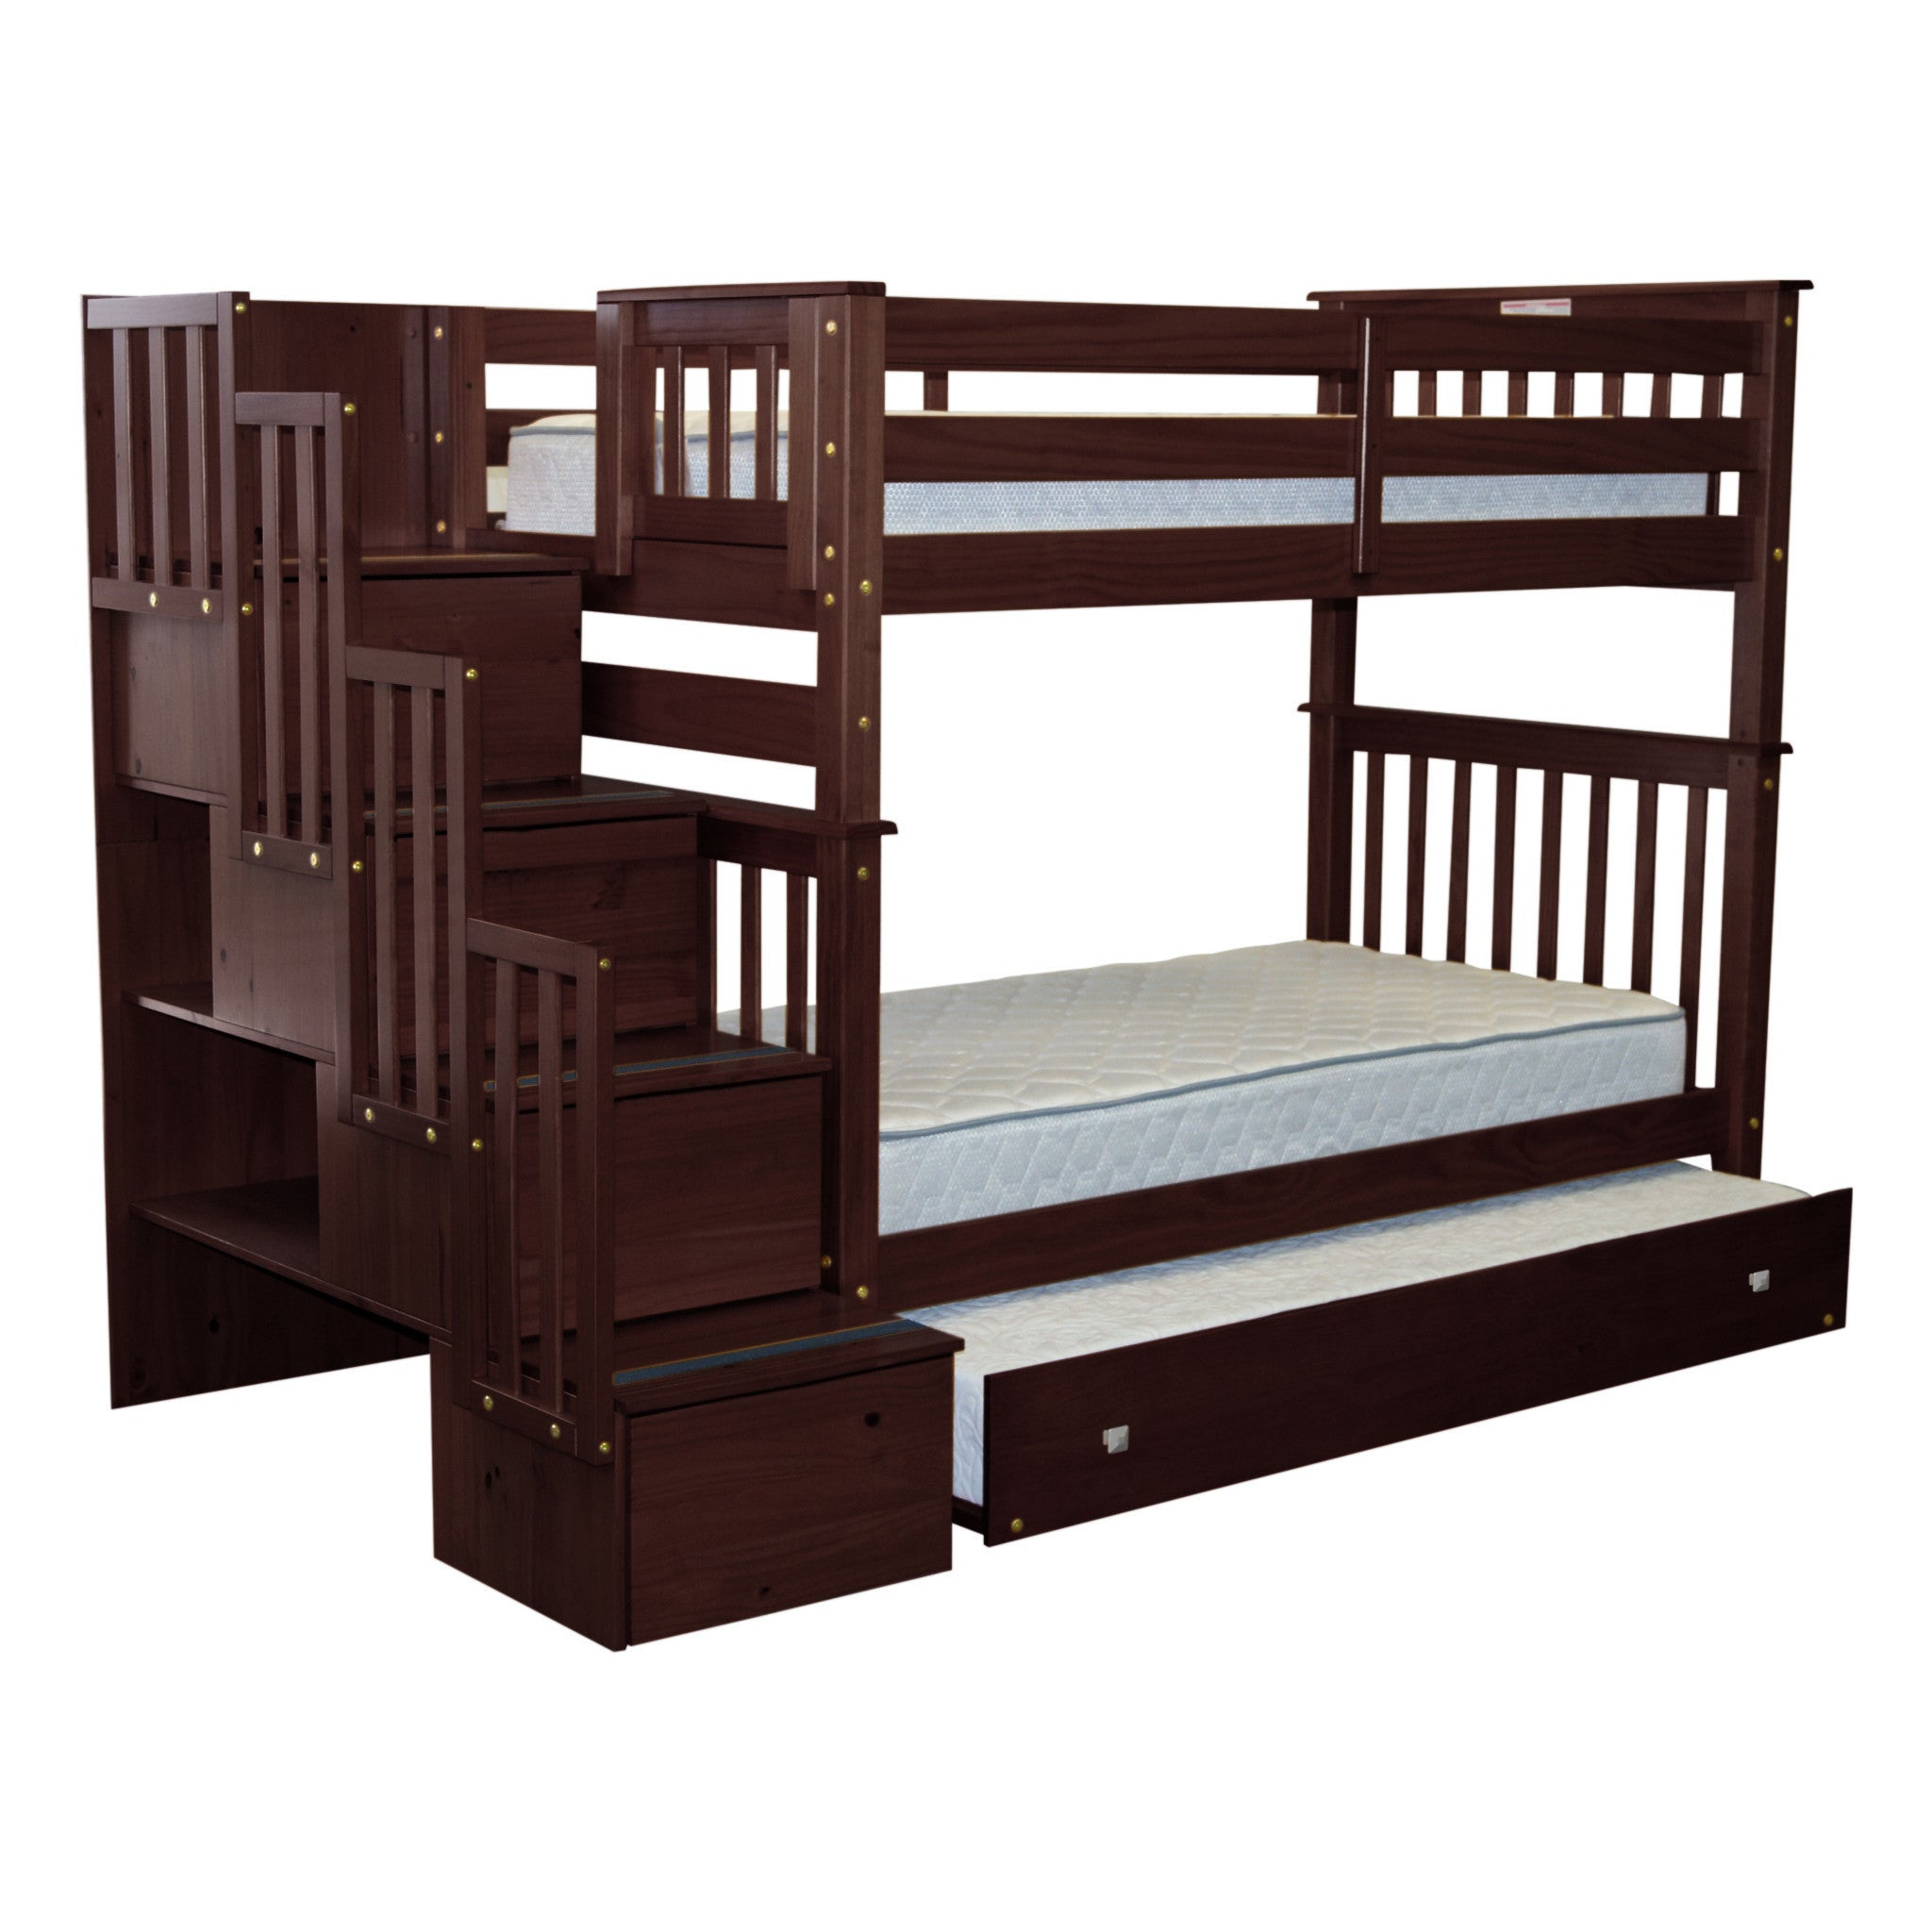 Bedz King Tall Stairway Bunk Bed Twin over Twin with 4 Dr...